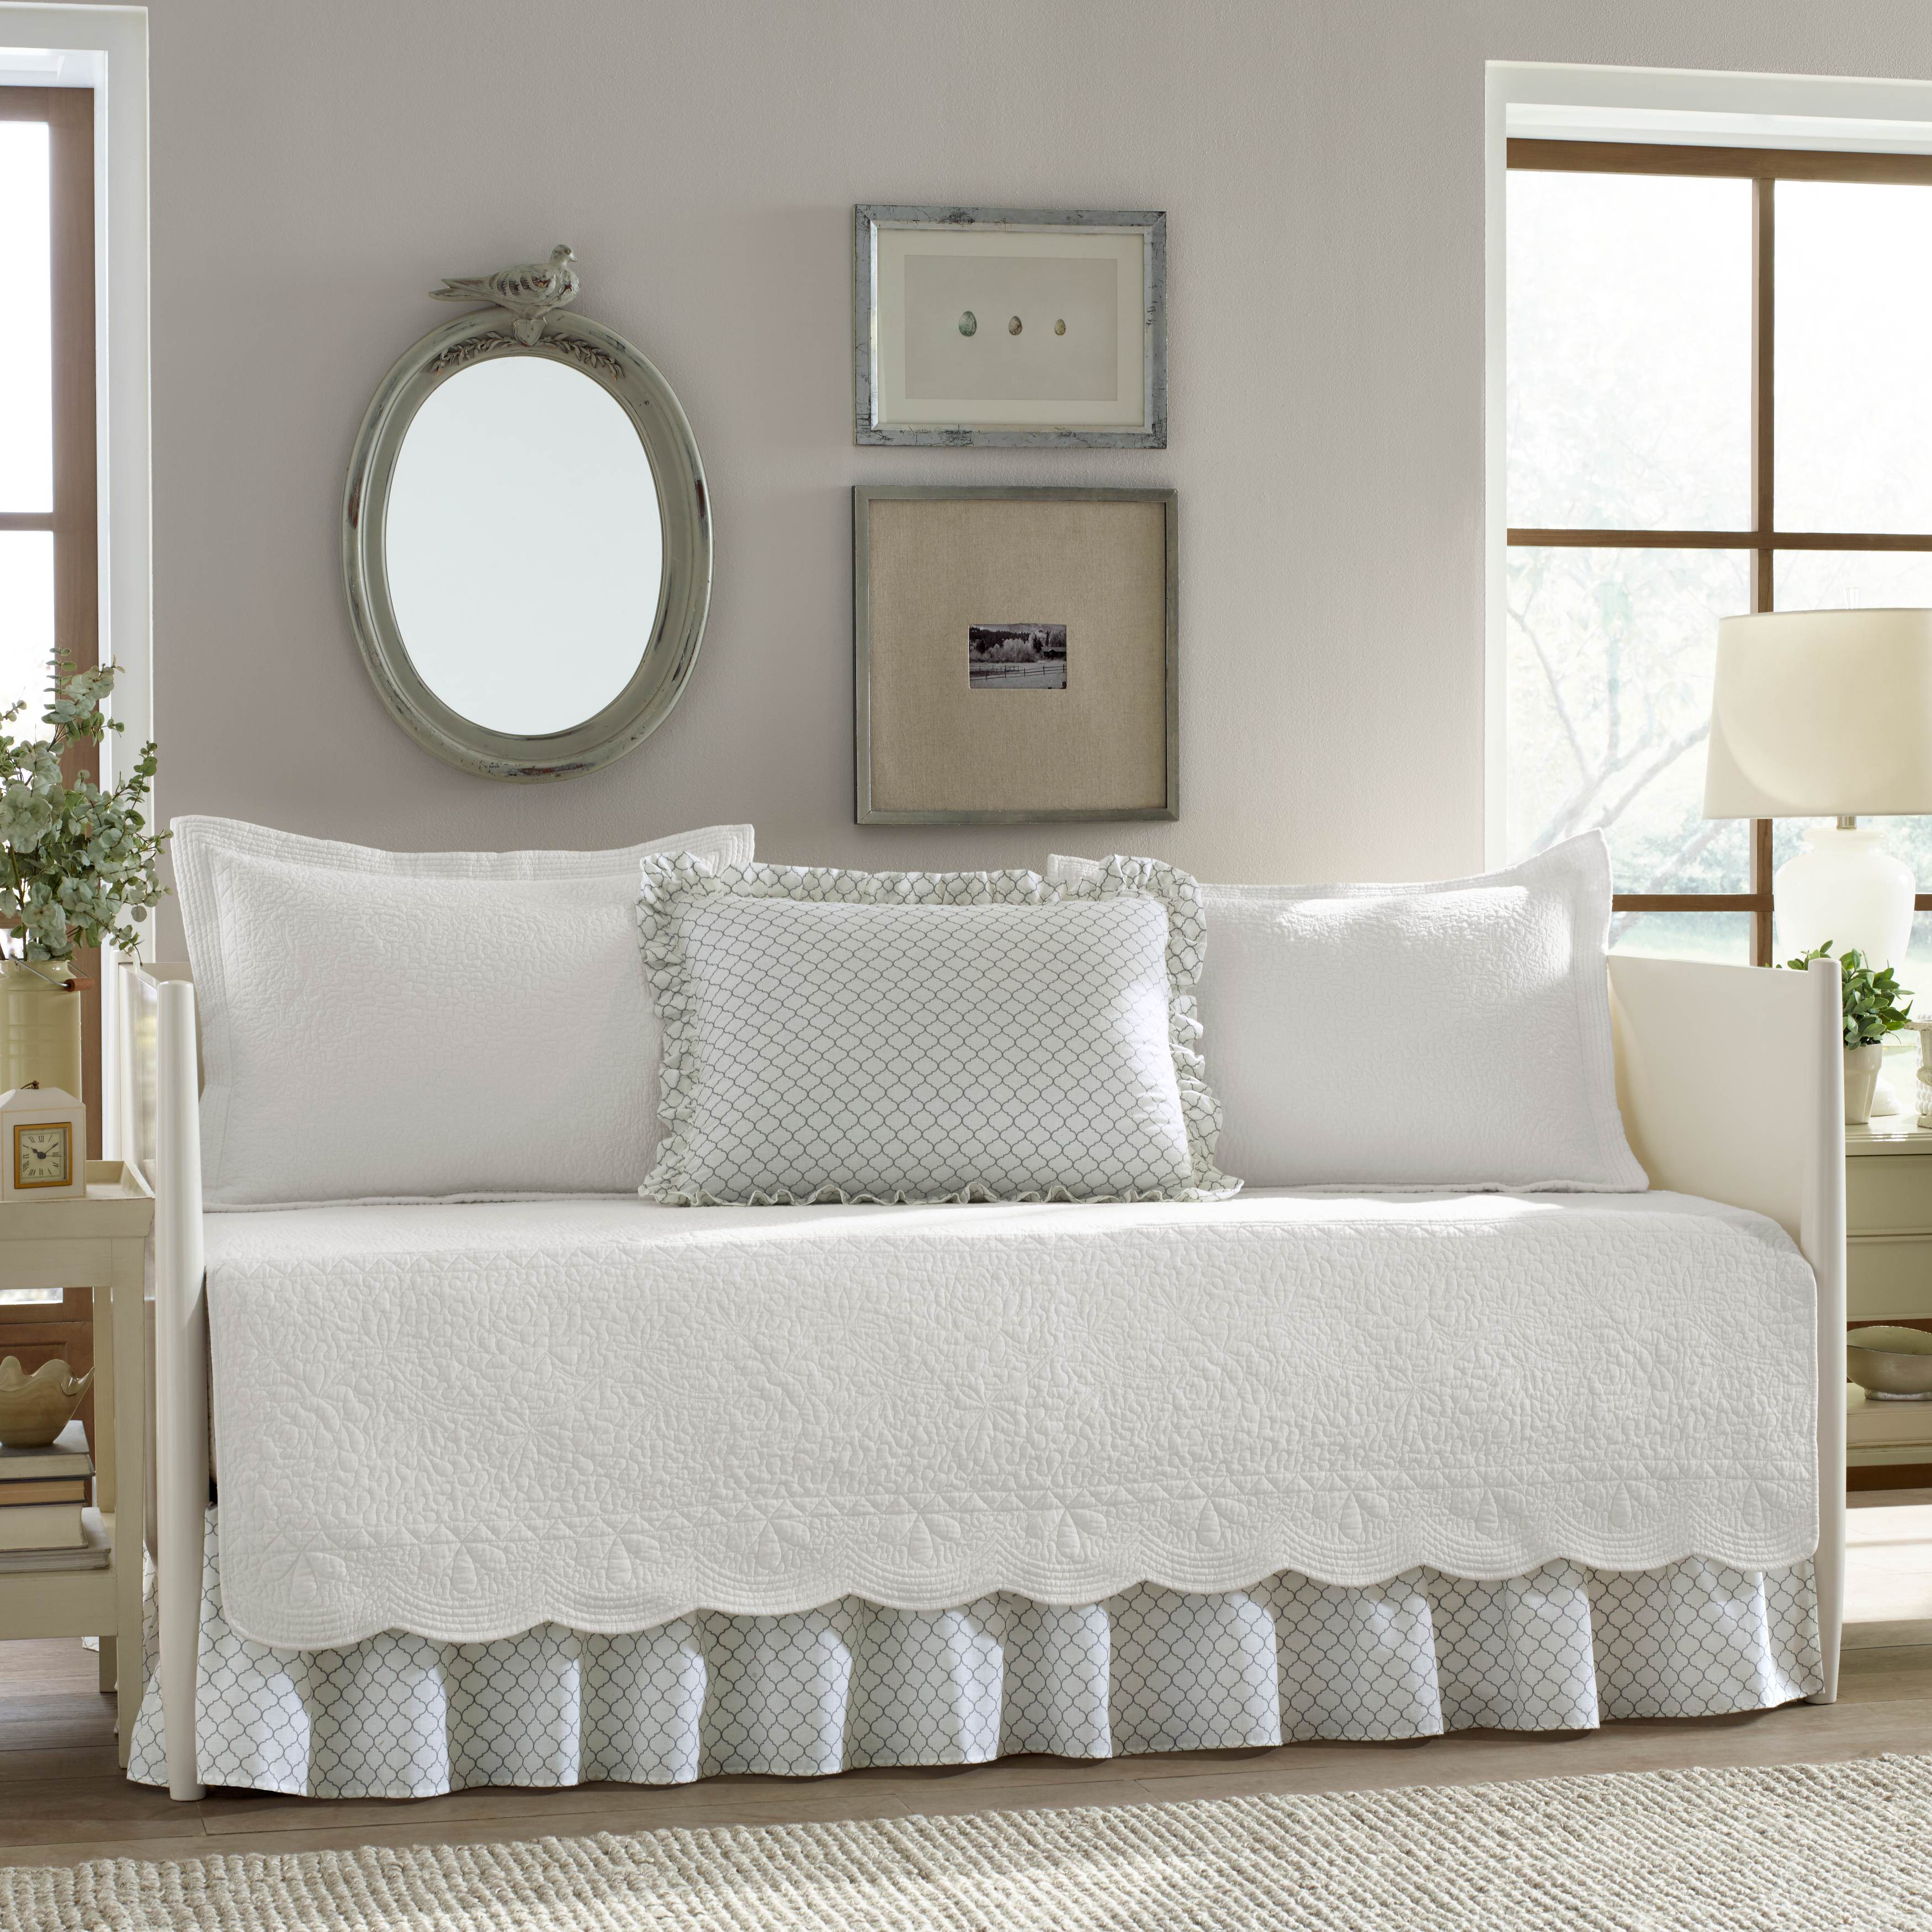 Stone Cottage Trellis White Daybed Set